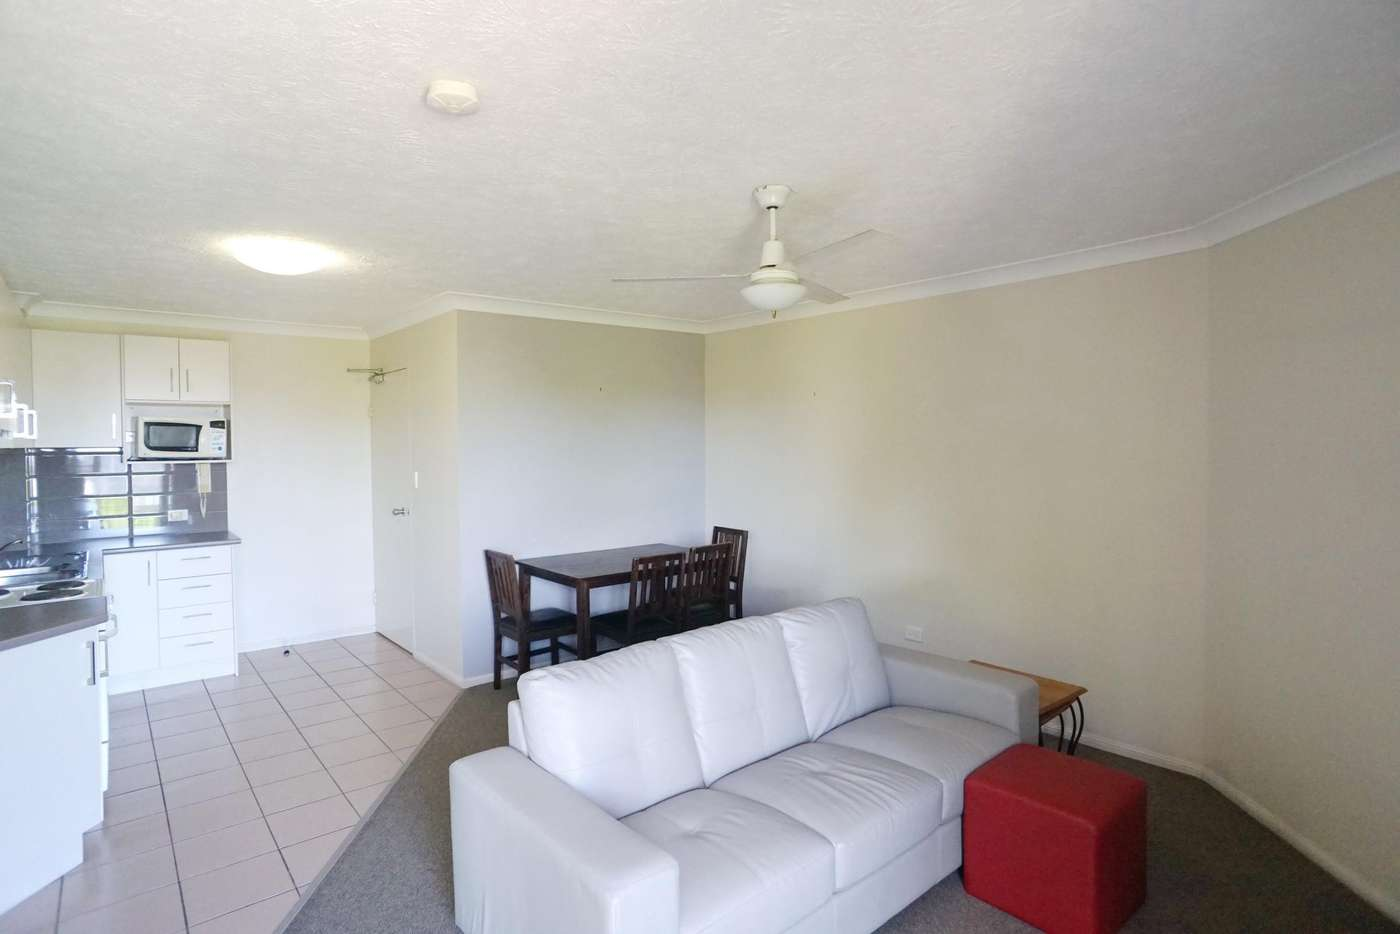 Main view of Homely apartment listing, 51 Leopard Street, Kangaroo Point QLD 4169